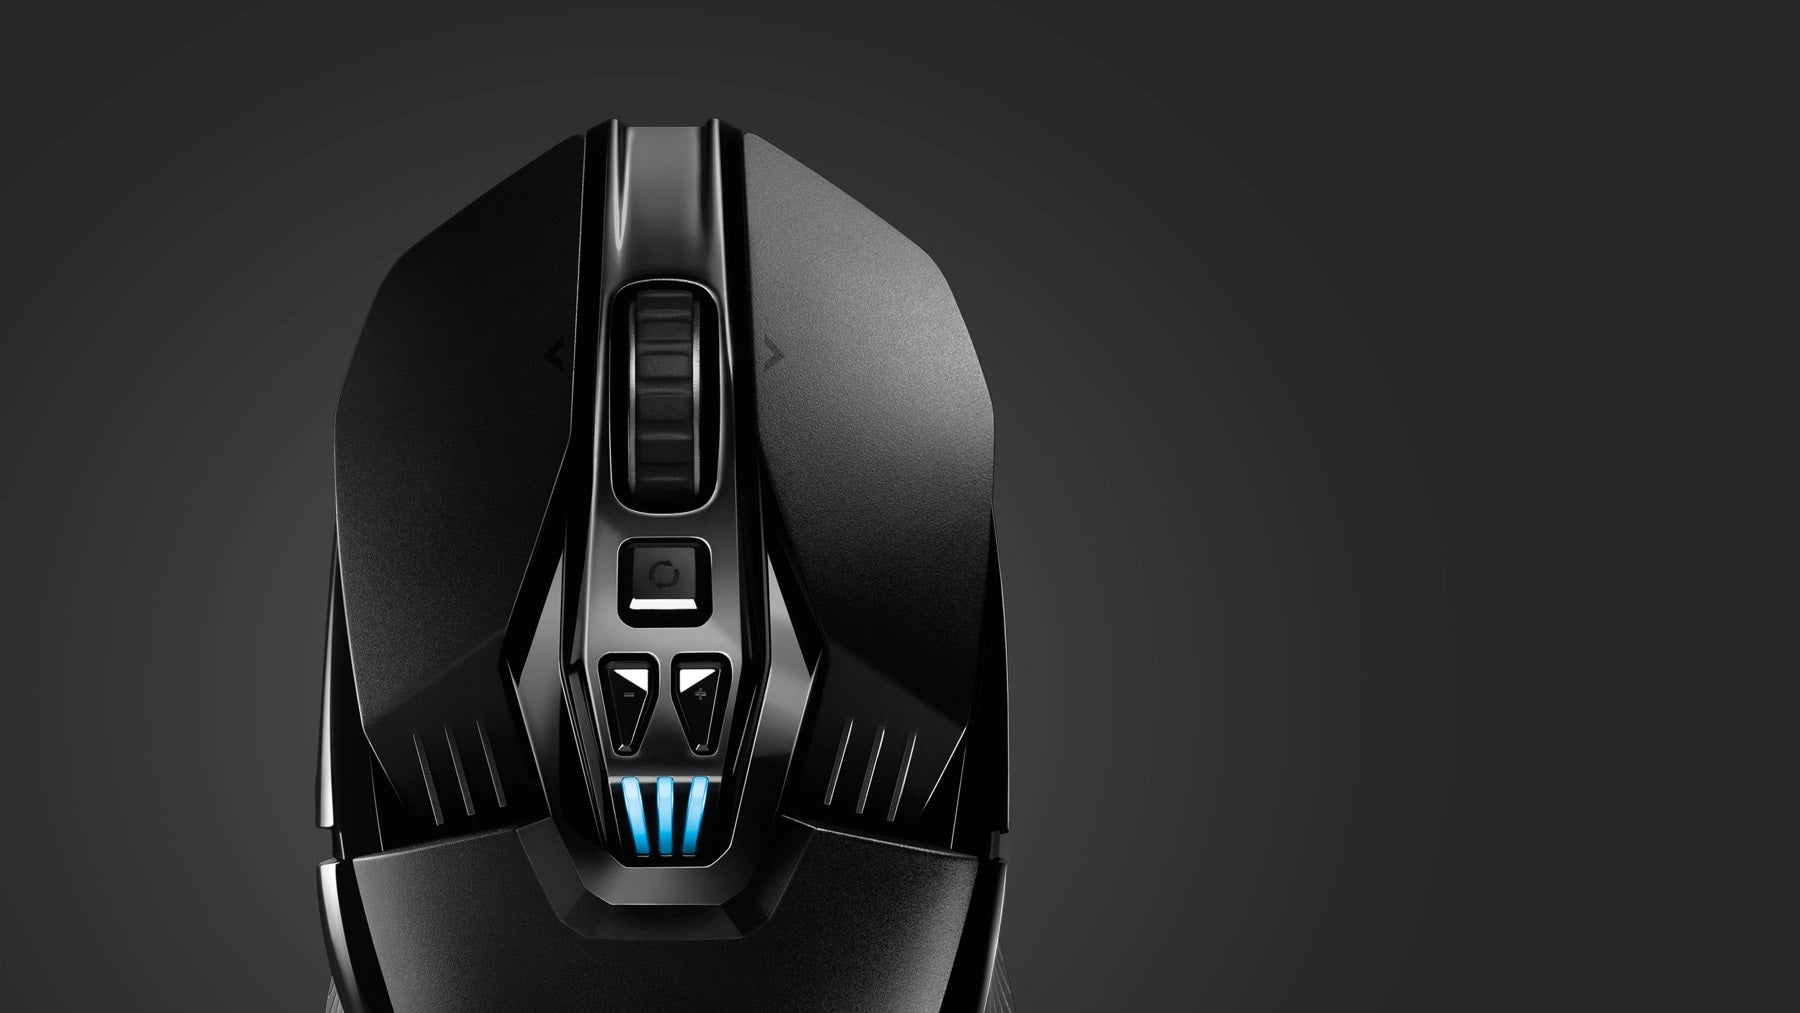 ULTIMATE CUSTOMIZATION - Configurable ambidextrous buttons, custom RGB lighting, 11 programmable buttons, on-the-fly DPI shift settings, onboard memory and more. G903 does it all with Logitech G HUB.